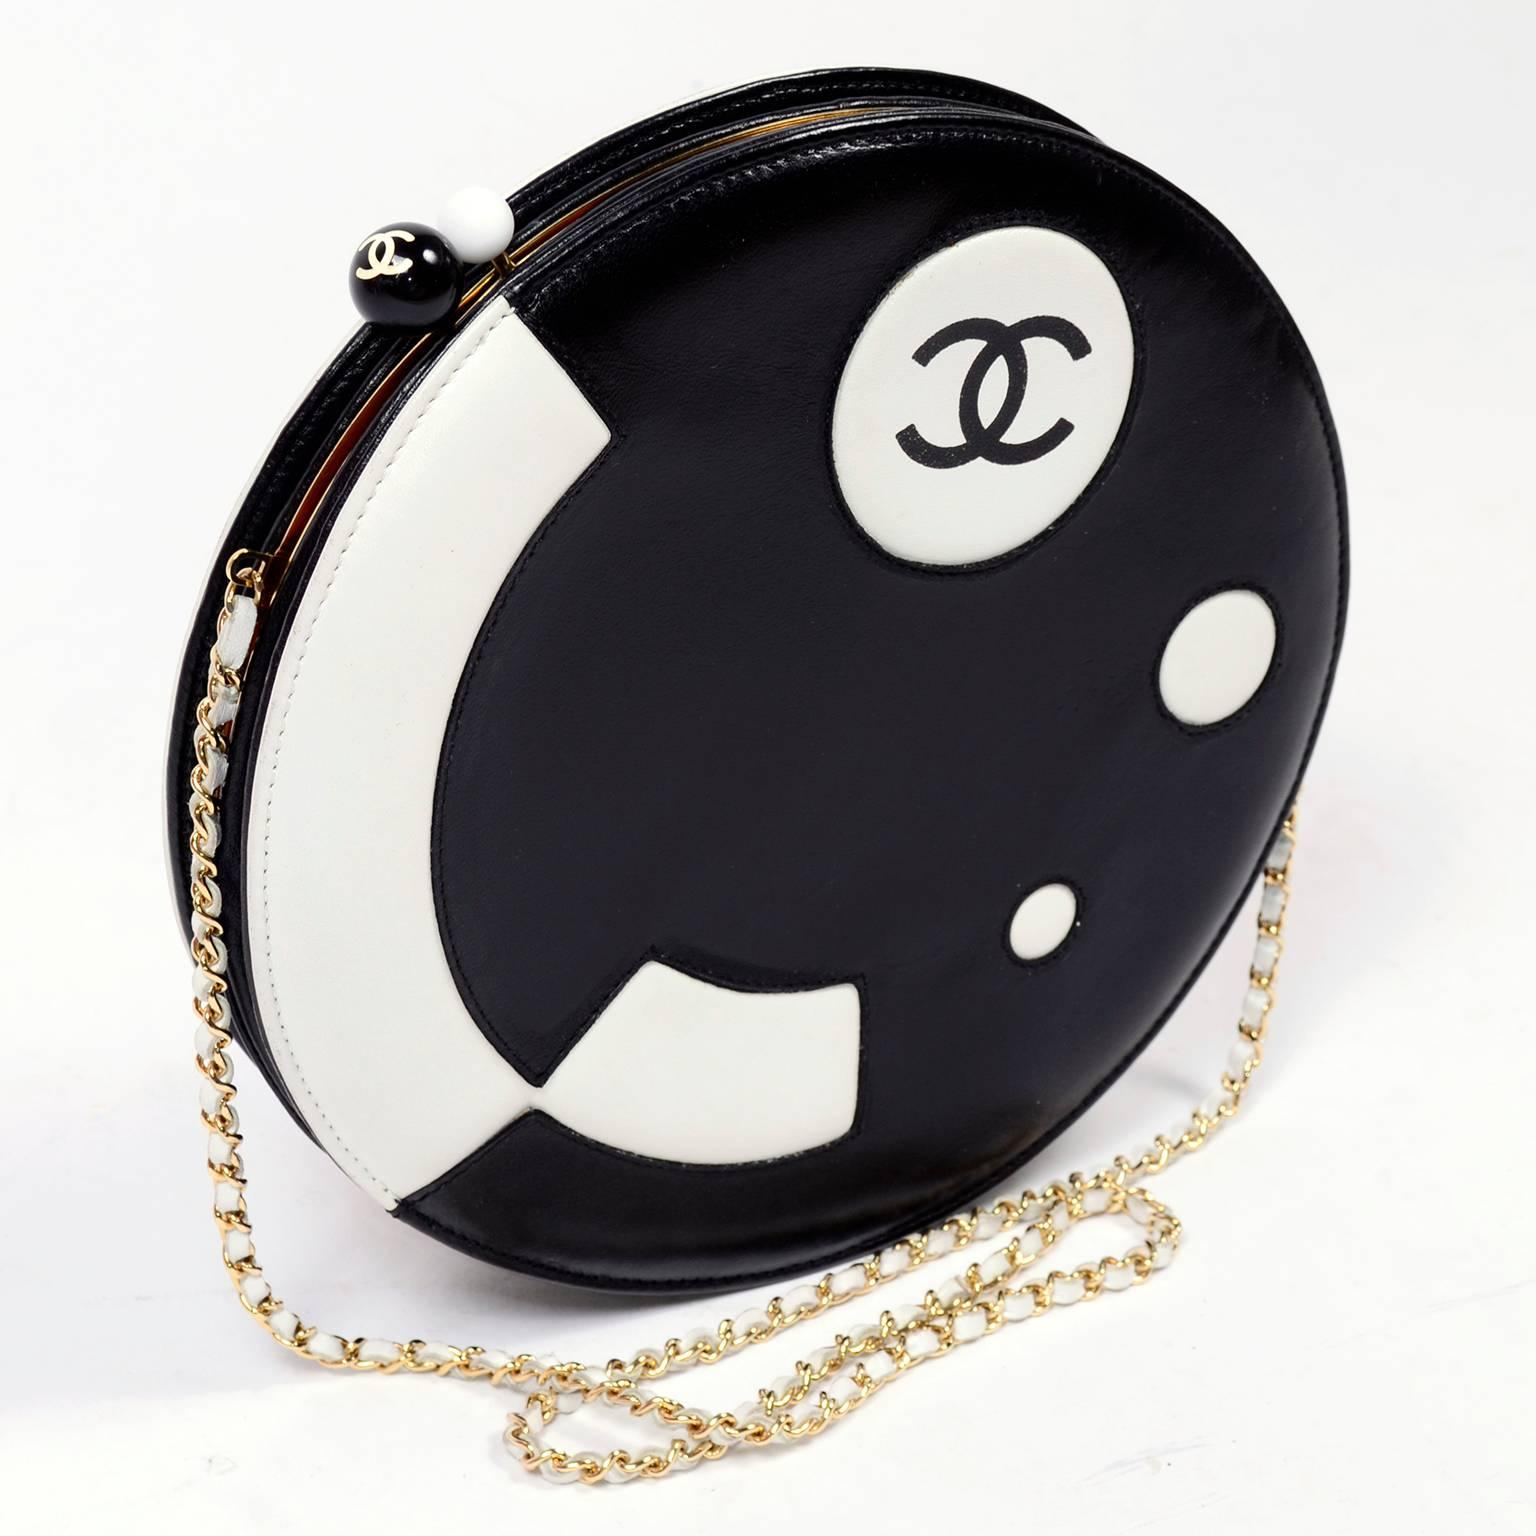 Rare Chanel Round Black and White Lambskin Handbag Circle Shoulder Bag or  Clutch For Sale at 1stdibs